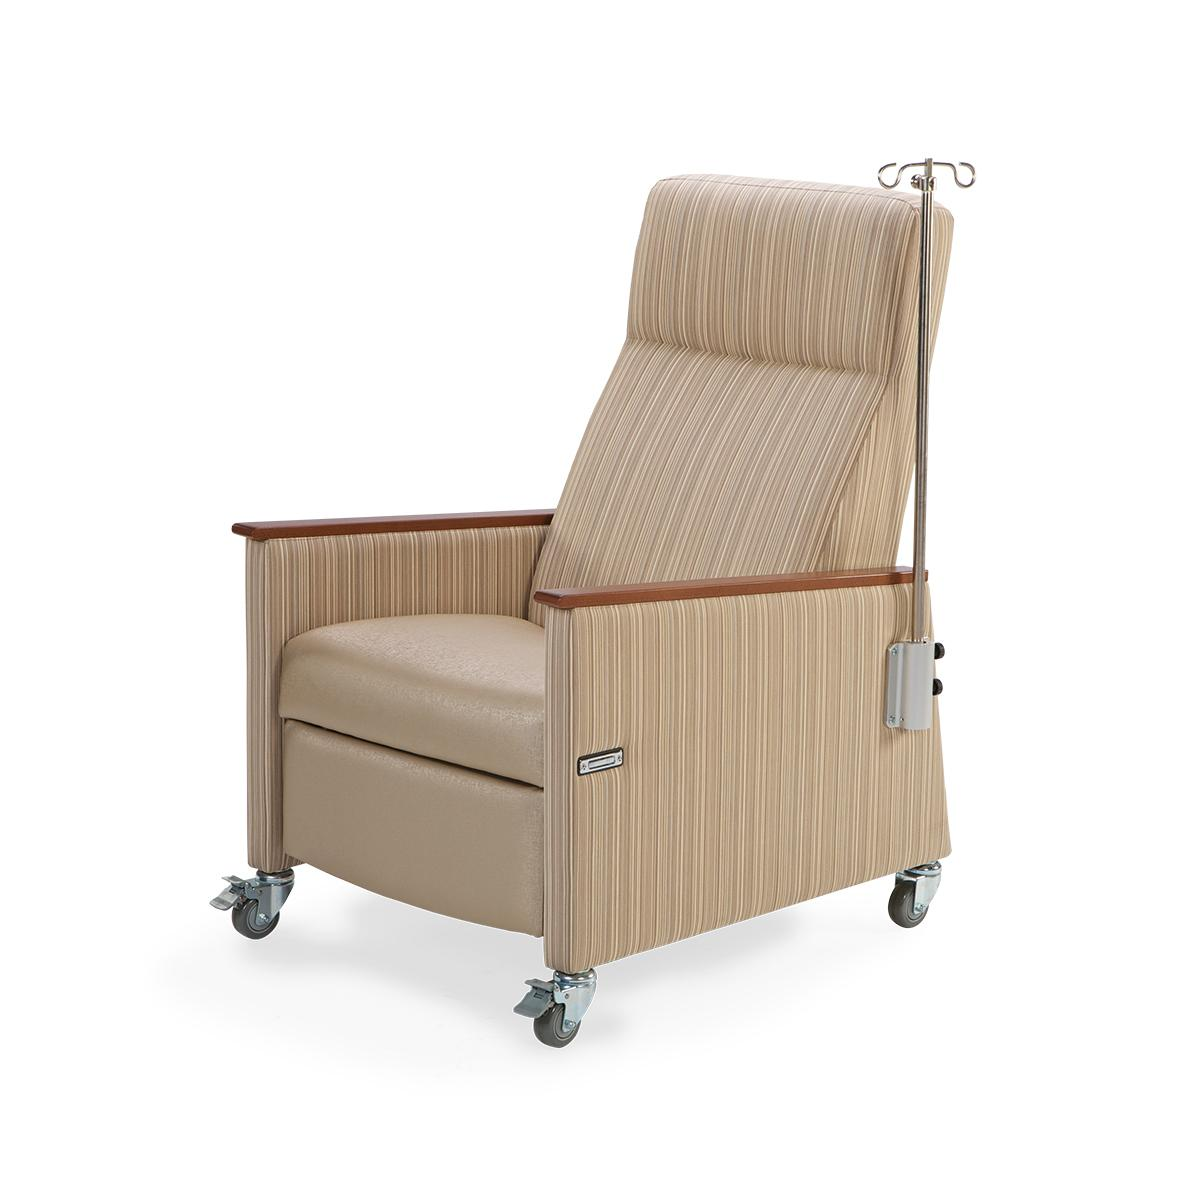 Art of Care Two Position Recliner, brown with striated pattern fabric, 3/4 view